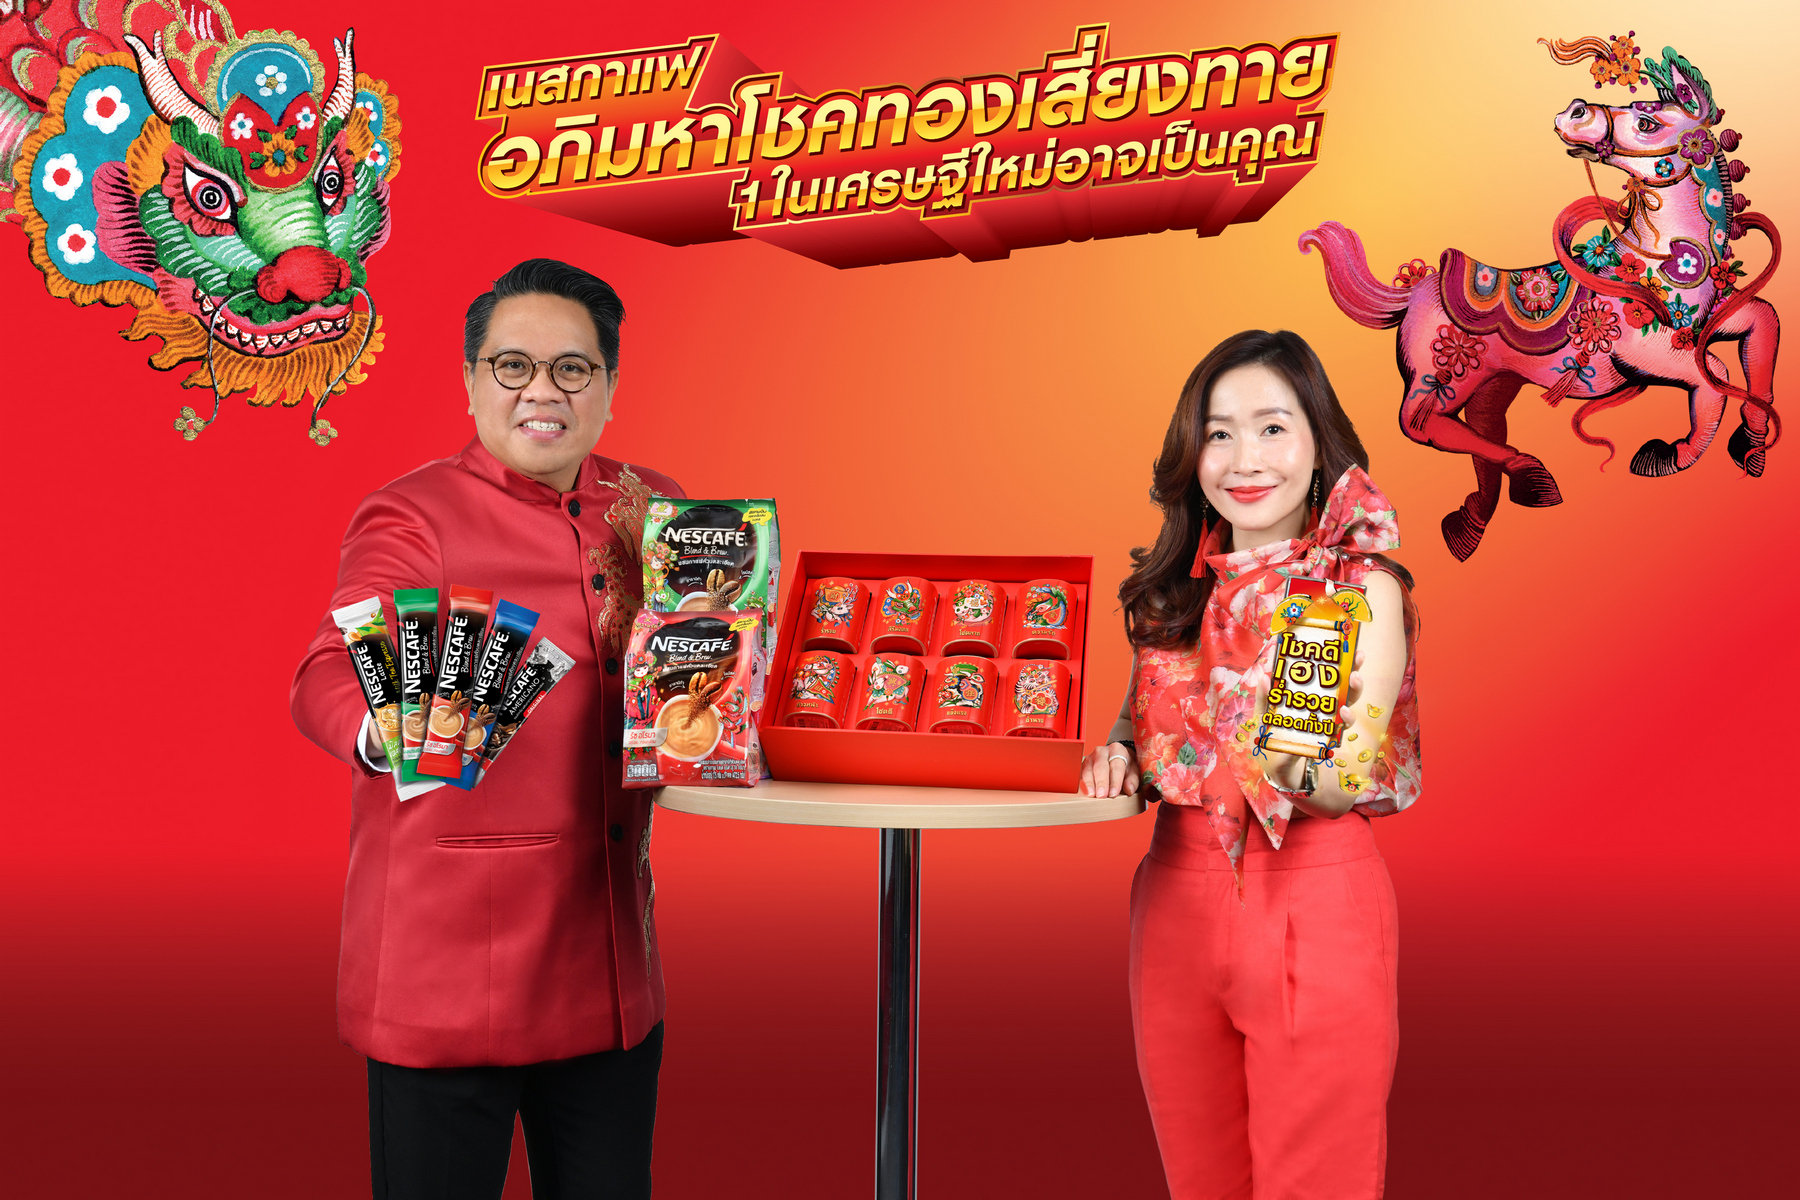 NESCAFÉ BLEND & BREW launches big campaign with blessings to Thai people in 2021